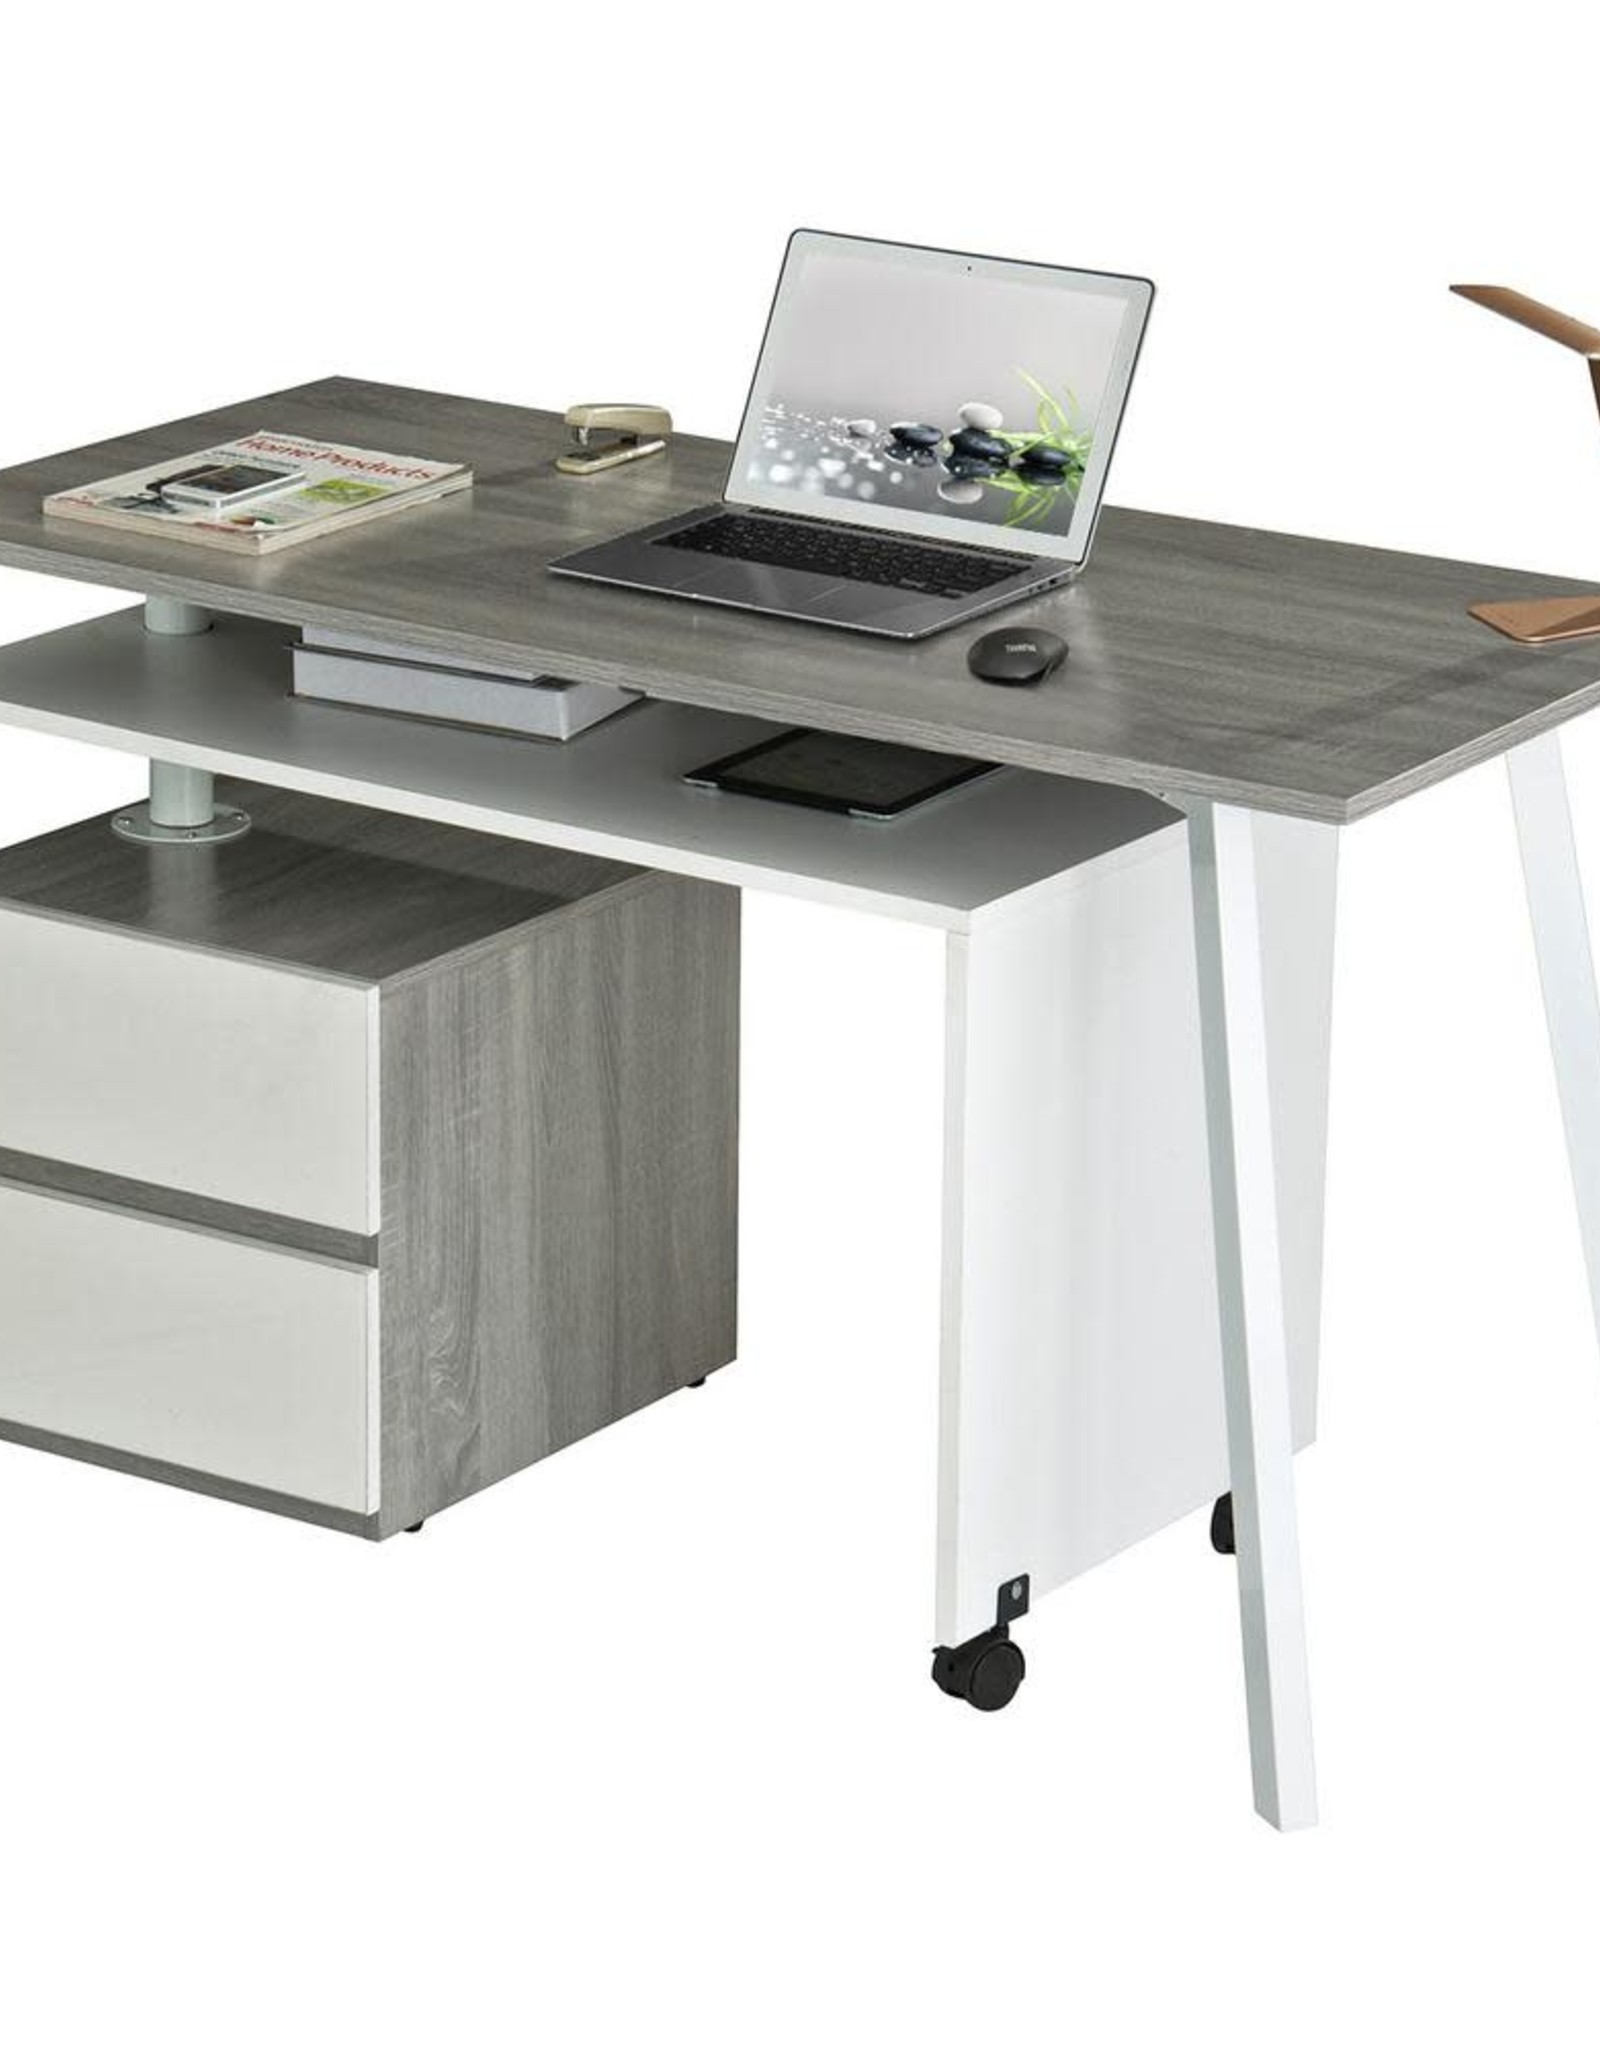 Techni Mobili 58 in. L-Shaped Gray 2 Drawer Computer Desk with Wheels